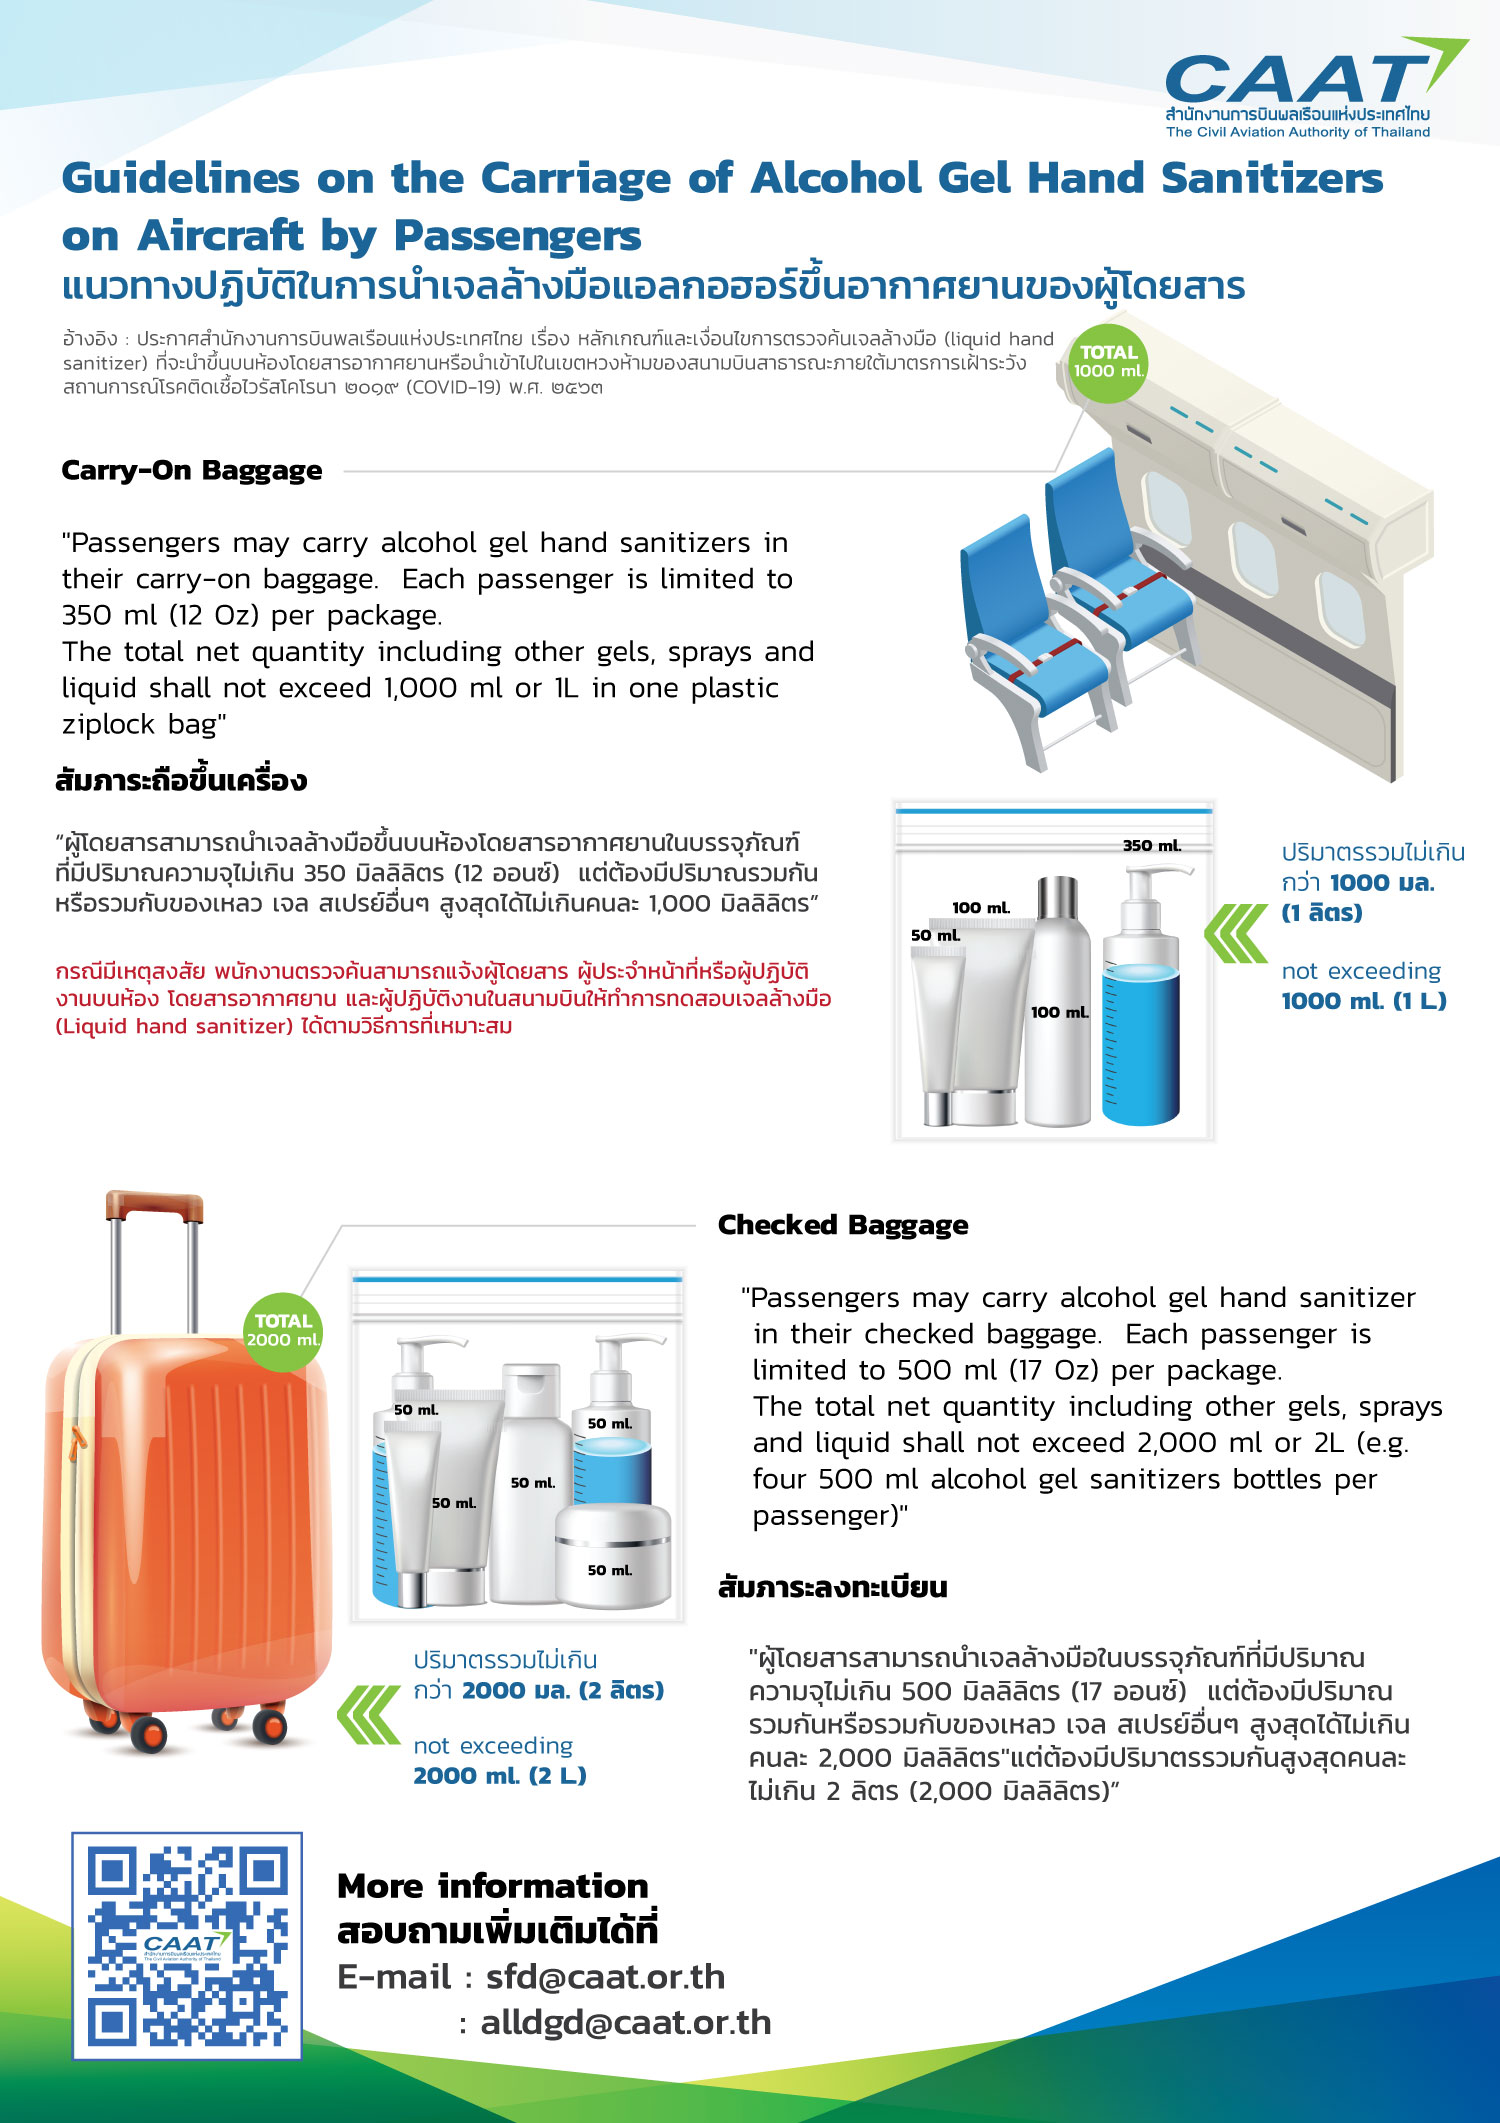 guidelines-on-the-carriage-of-alcohol-gel-hand-sanitizers